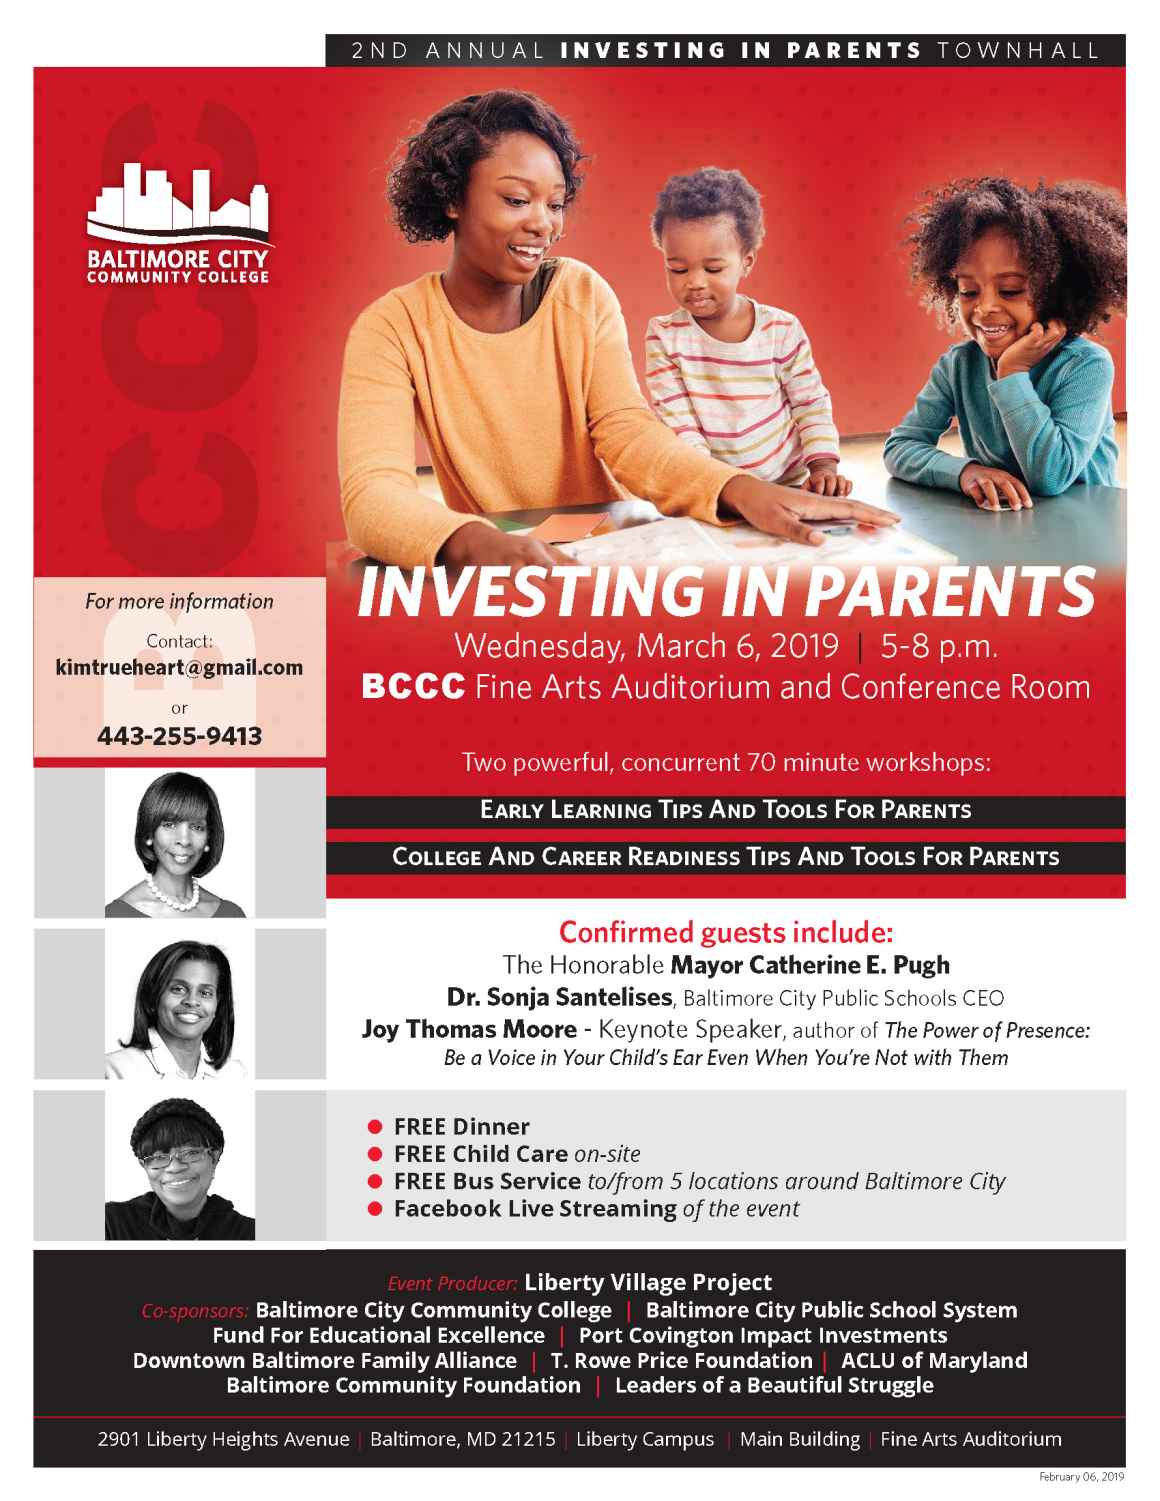 Flyer with details of the Investing in Parents event, including confirmed guests, event information, and co-sponsors.